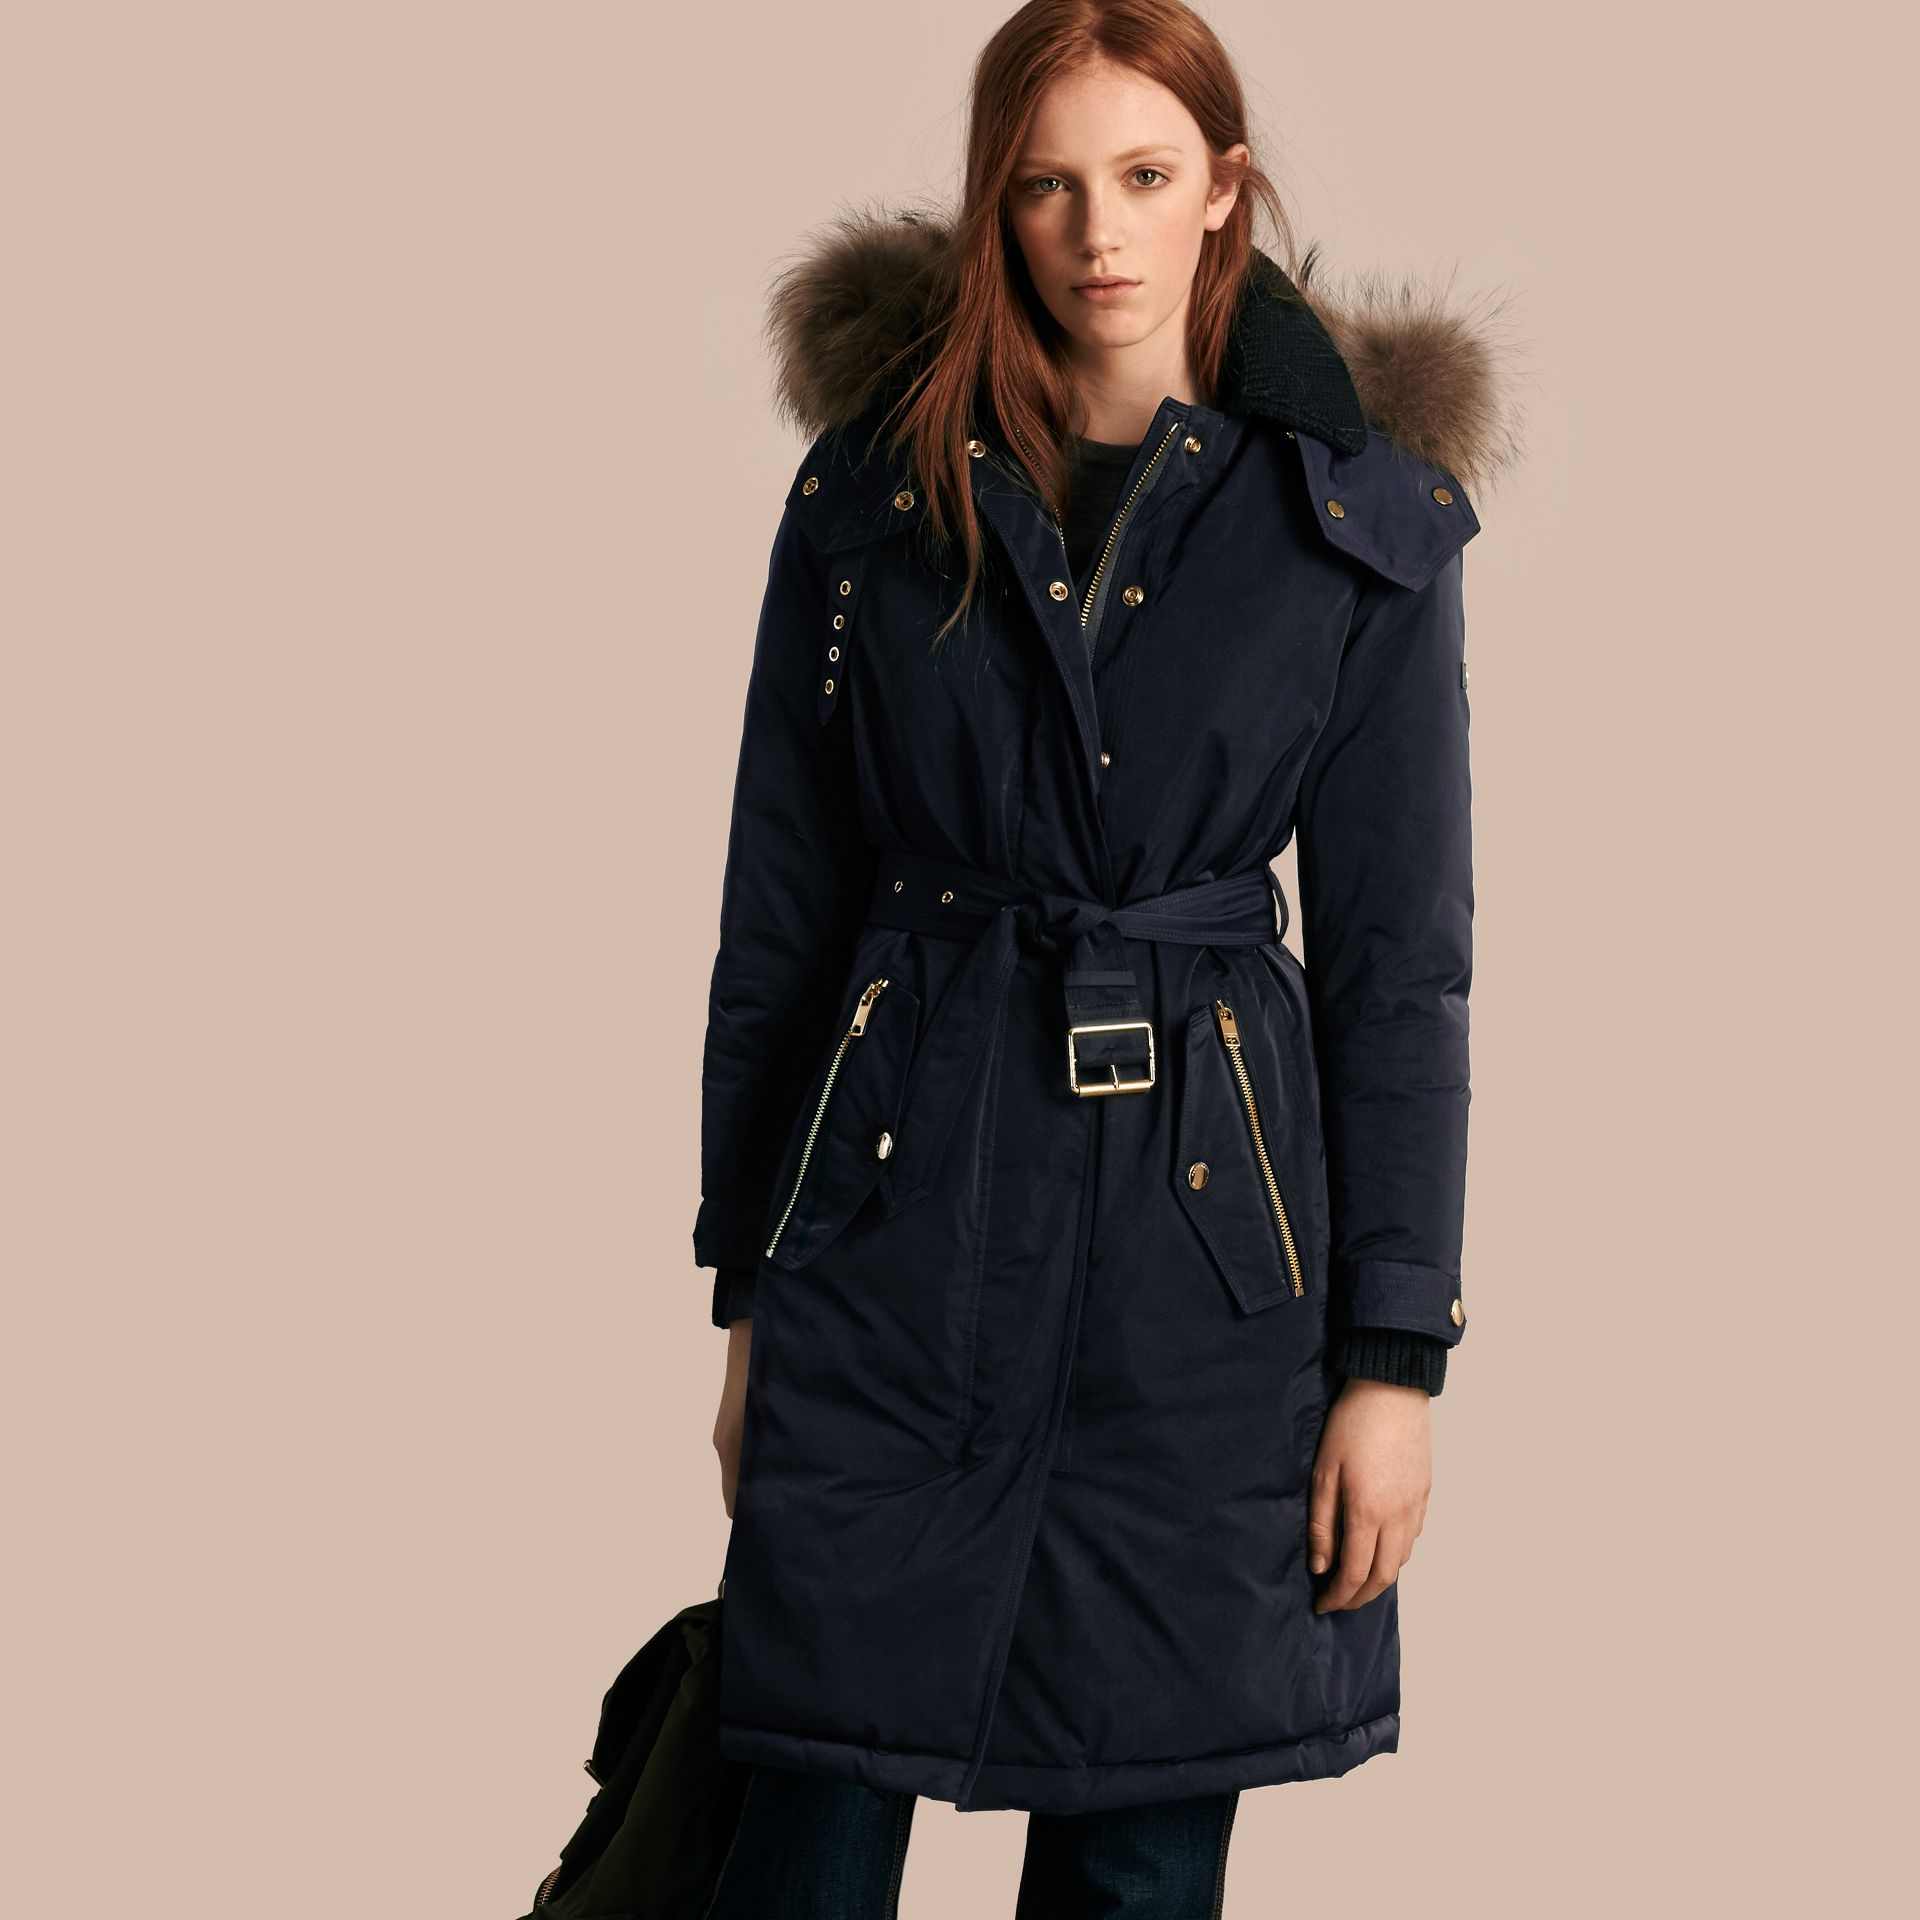 Navy Down-filled Parka Coat with Detachable Fur Trim Navy - gallery image 1